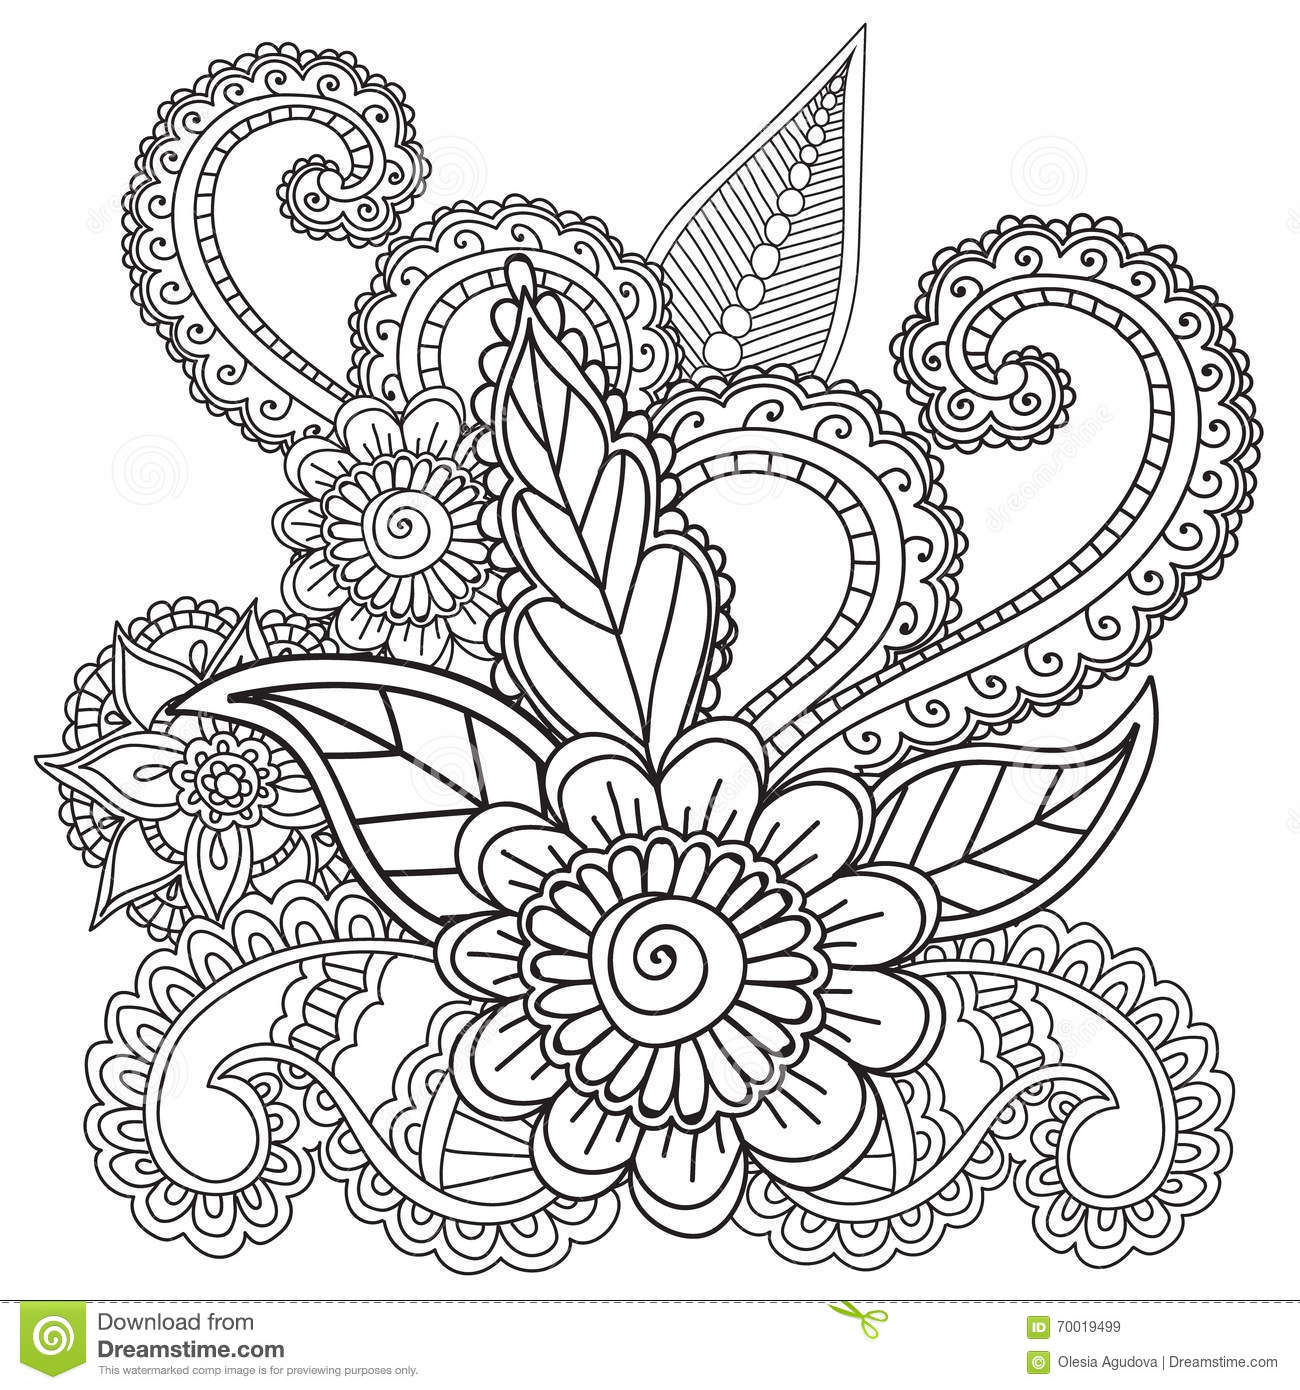 Coloring Pages For Adults Henna Mehndi Doodles Abstract Floral Elements Stock Vector